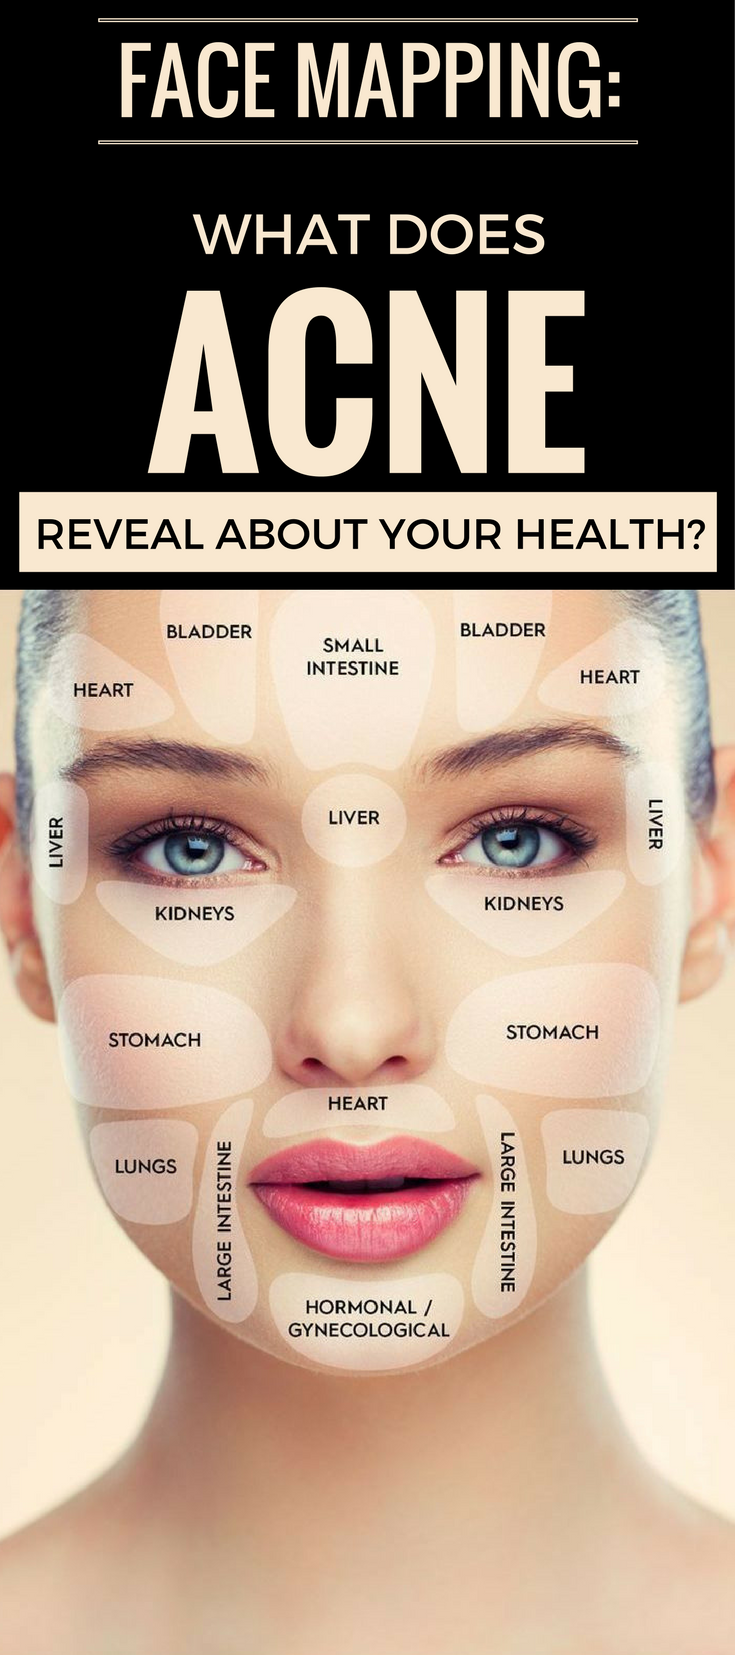 hight resolution of face mapping what does acne reveal about your health important acne area meaning acne diagram face